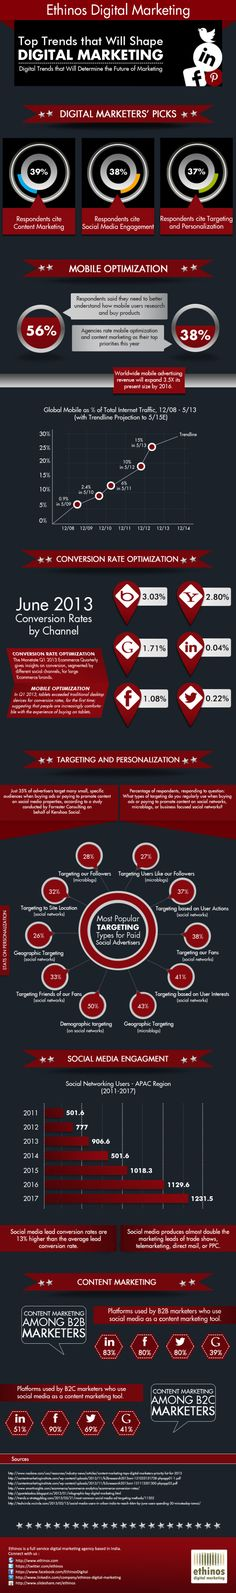 Awesome Digital Marketing Trends Infographic Check more at http://dougleschan.com/the-recruitment-guru/uncategorized/digital-marketing-trends-infographic/